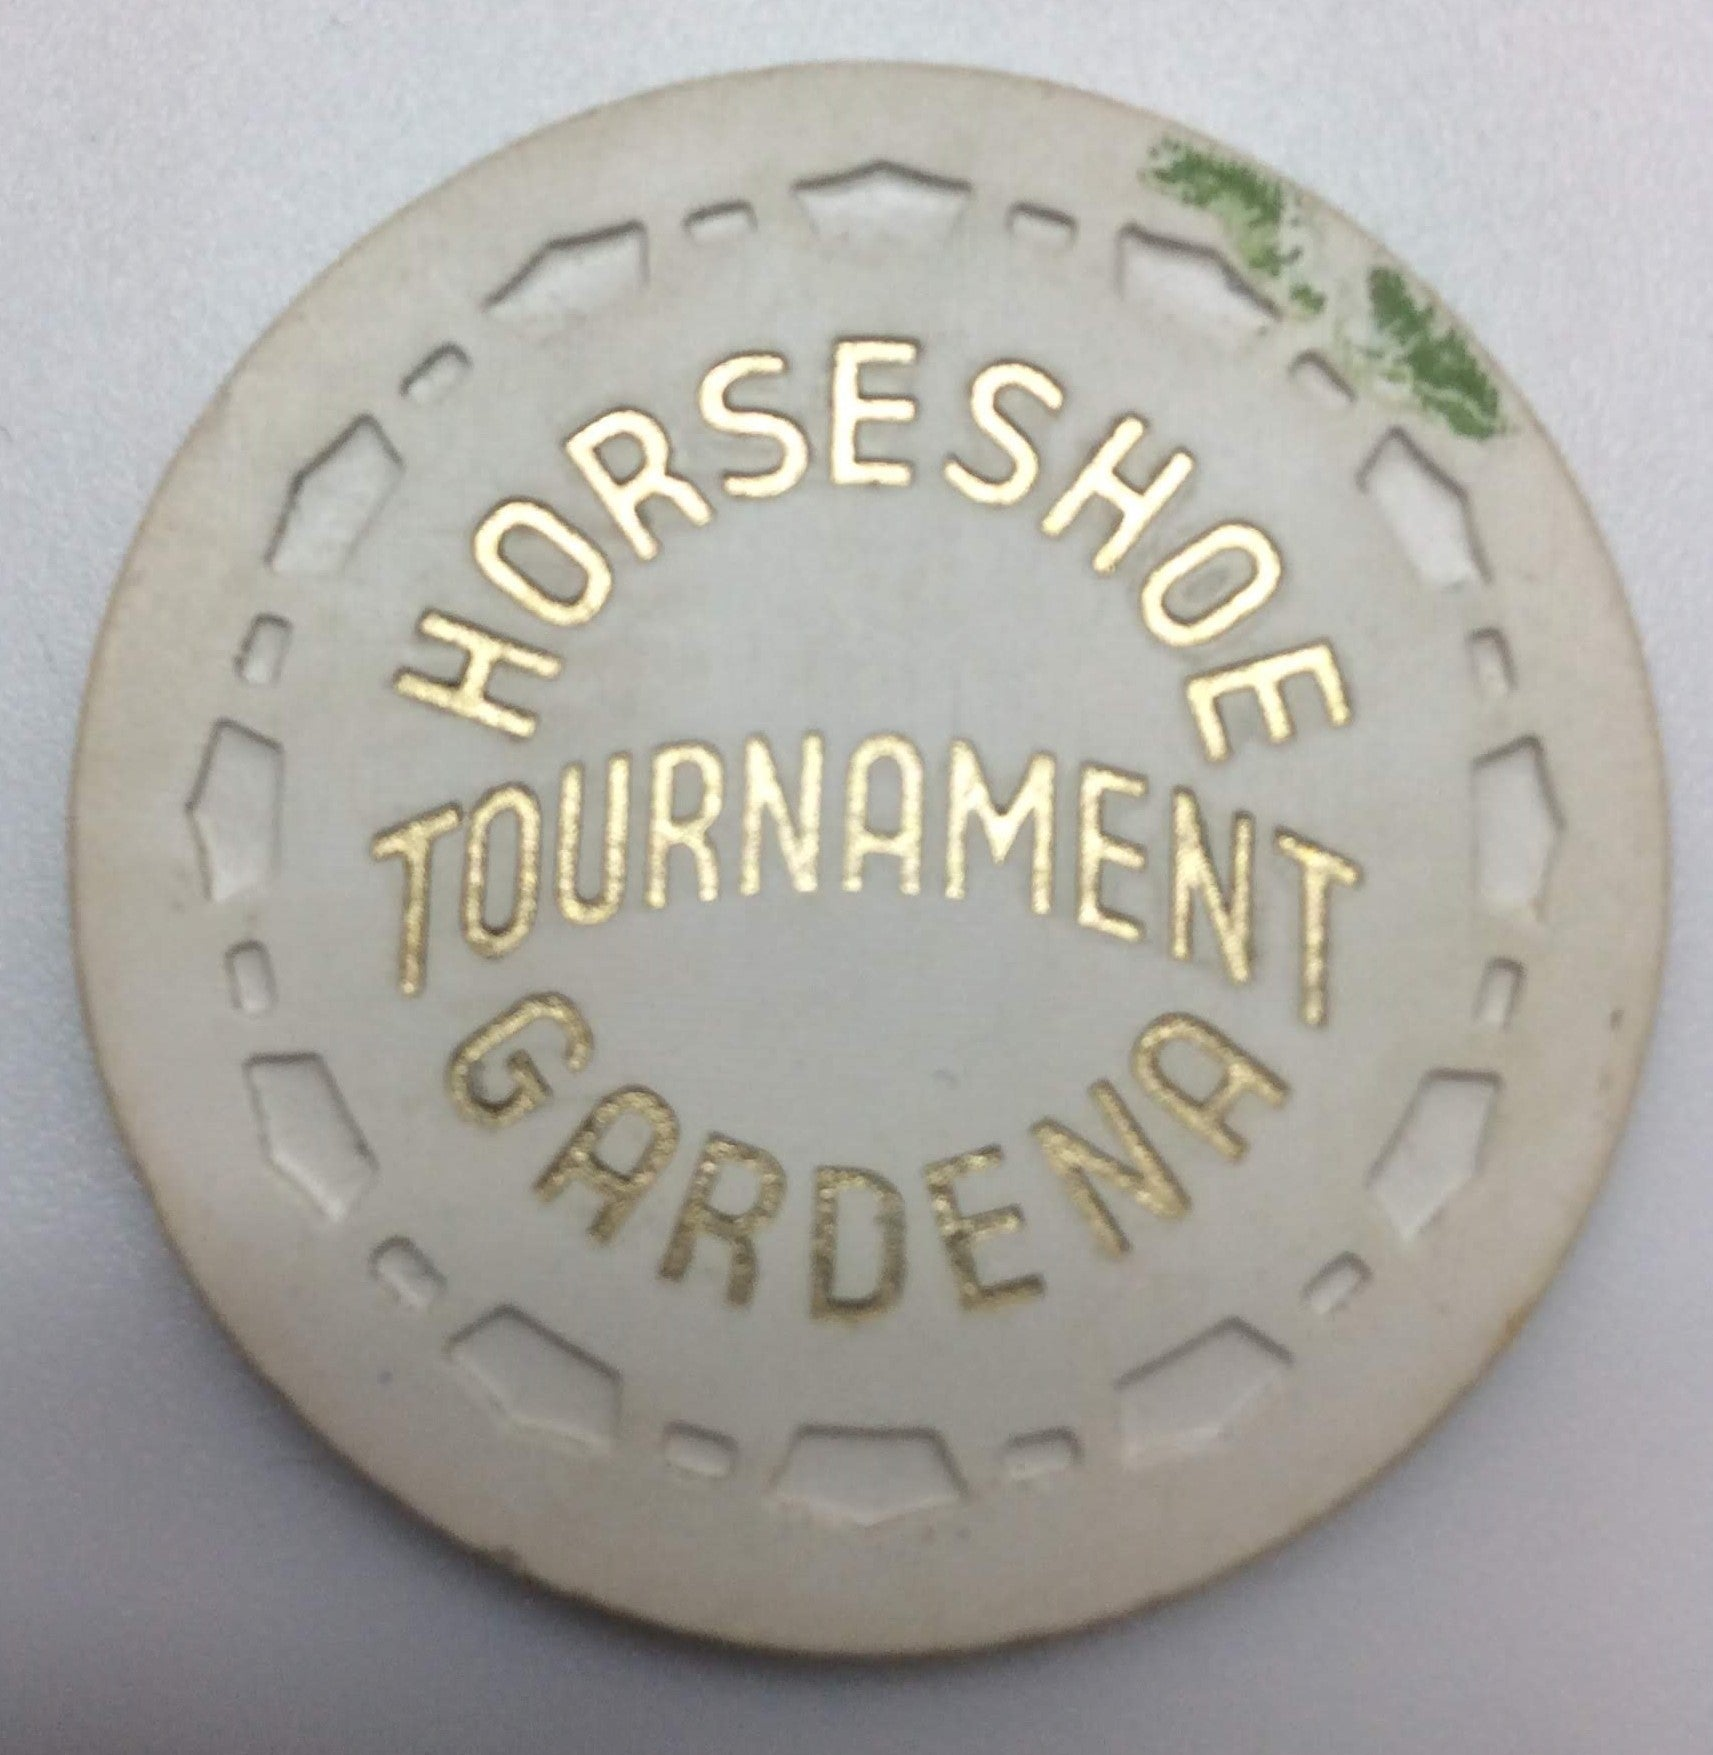 Horseshoe Gardena Tournament Chip White